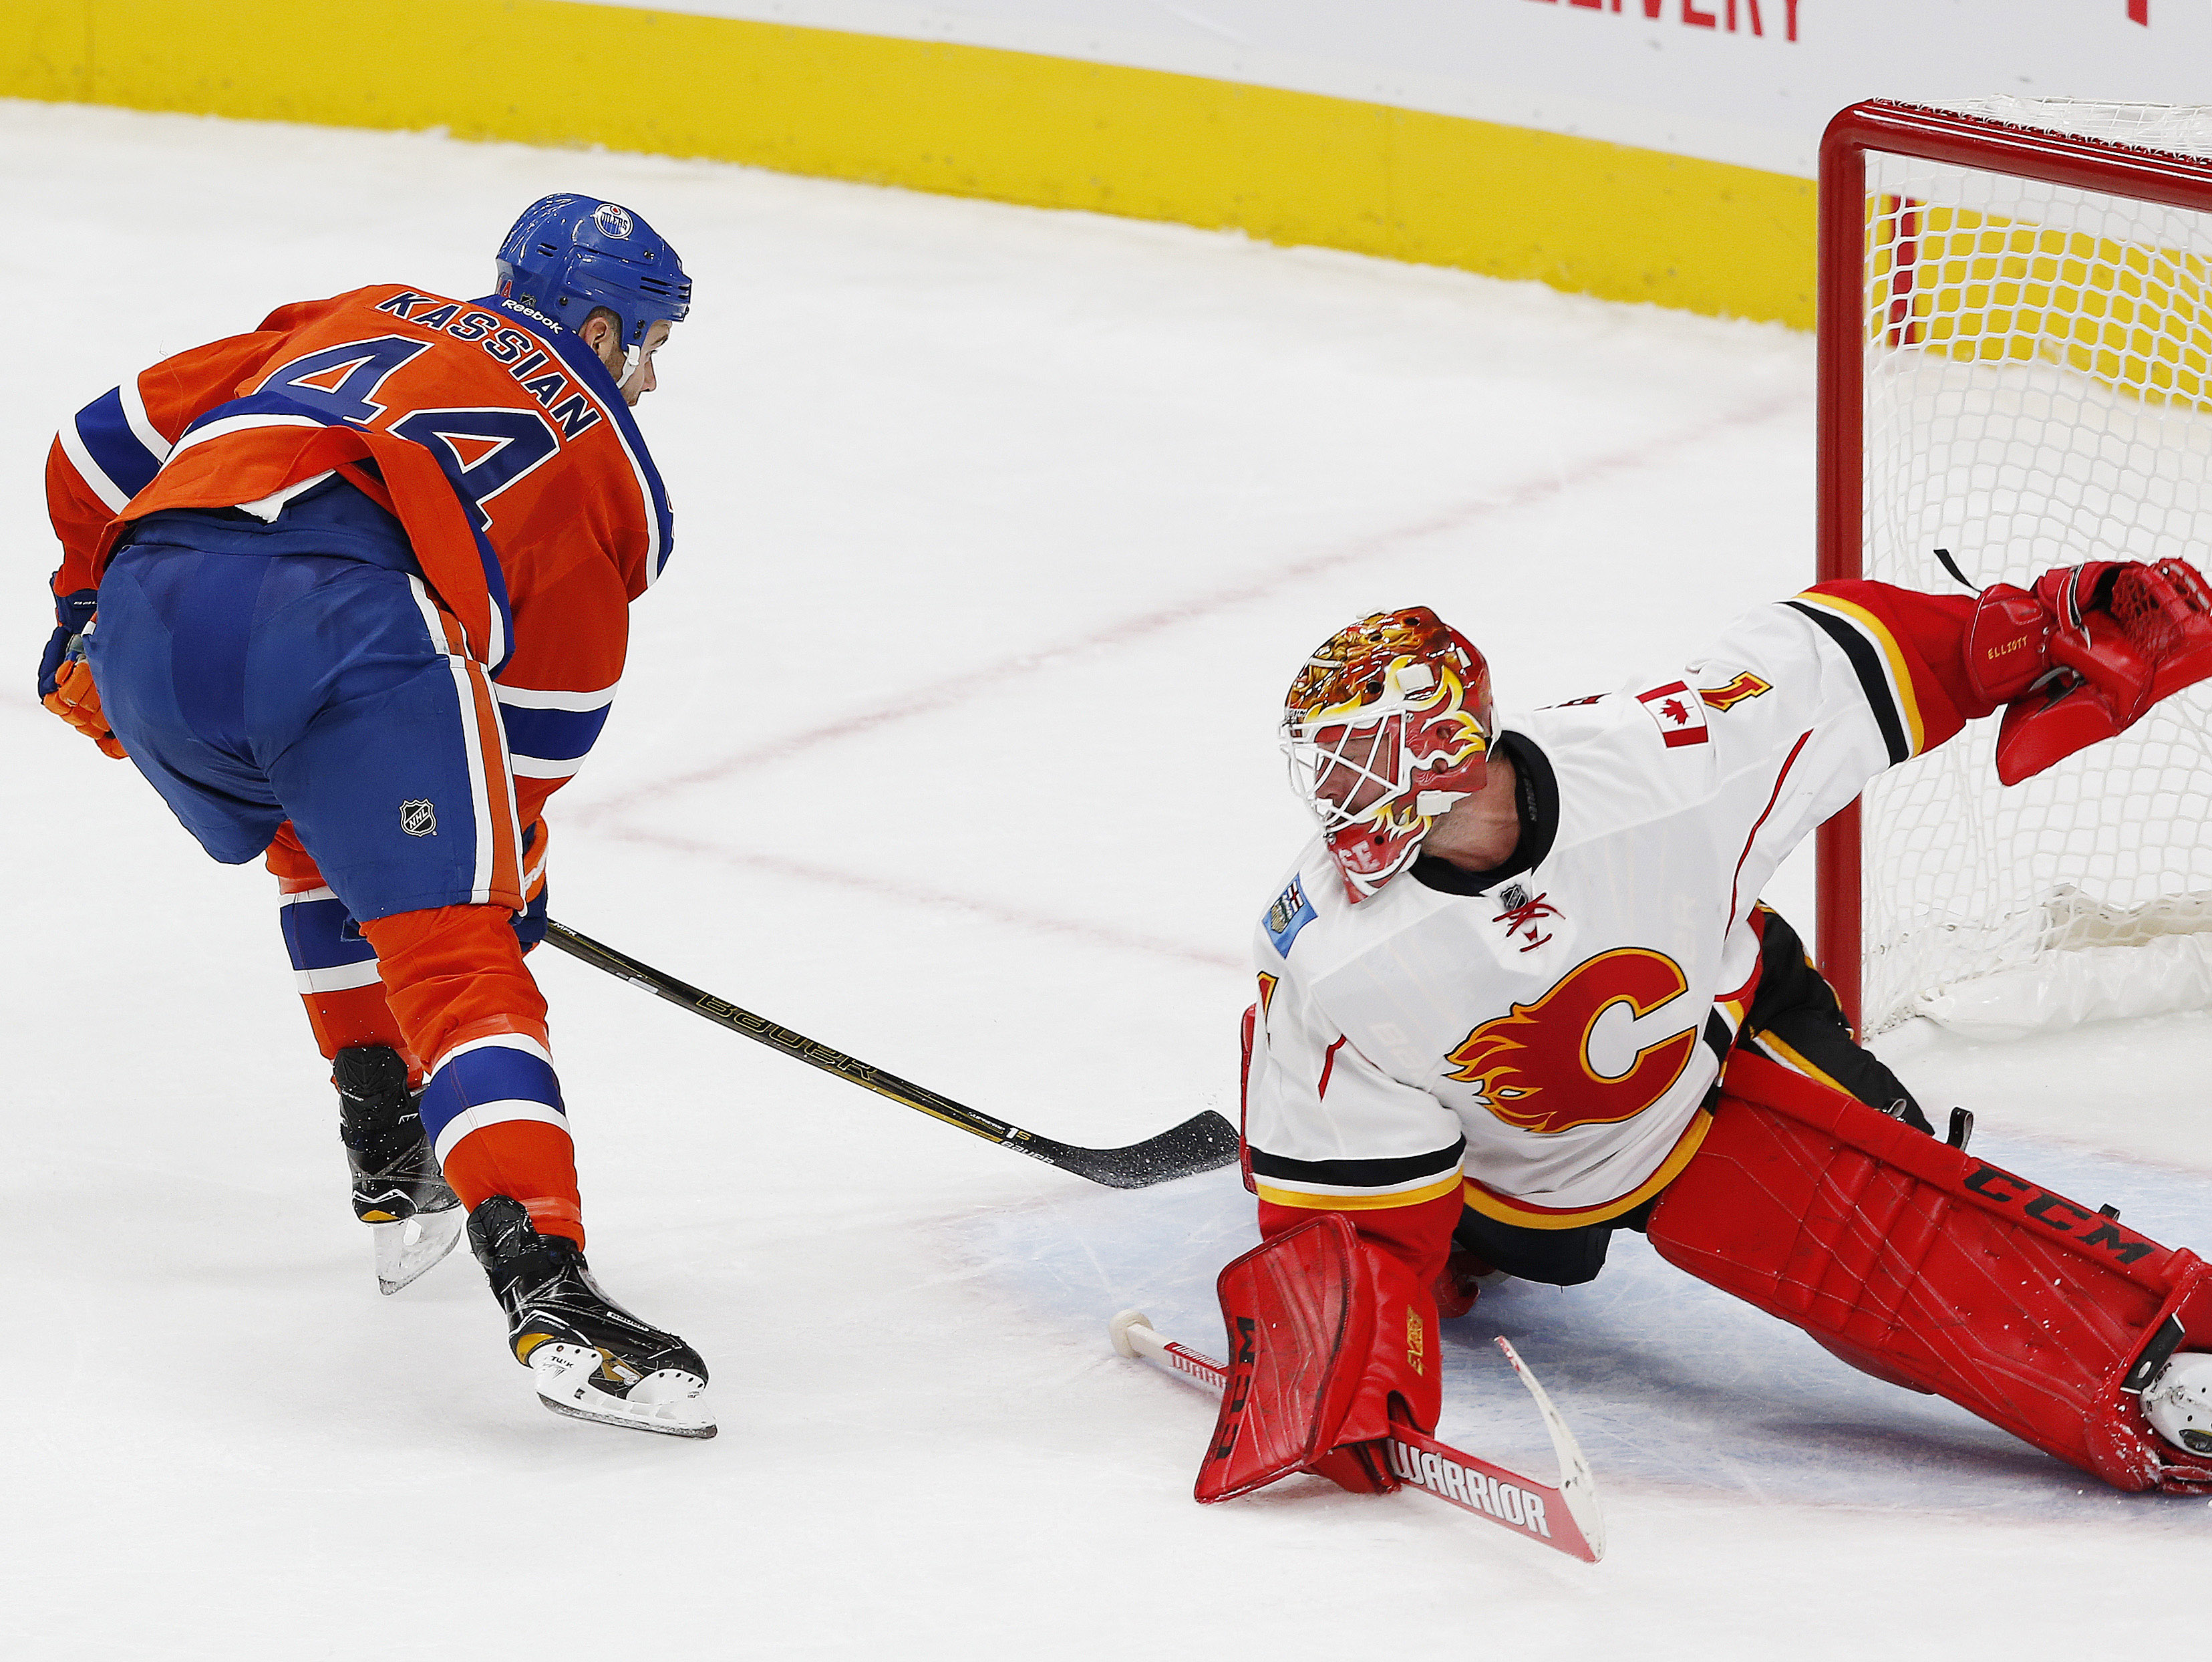 Zack Kassian practiced with the second line on Thursday.